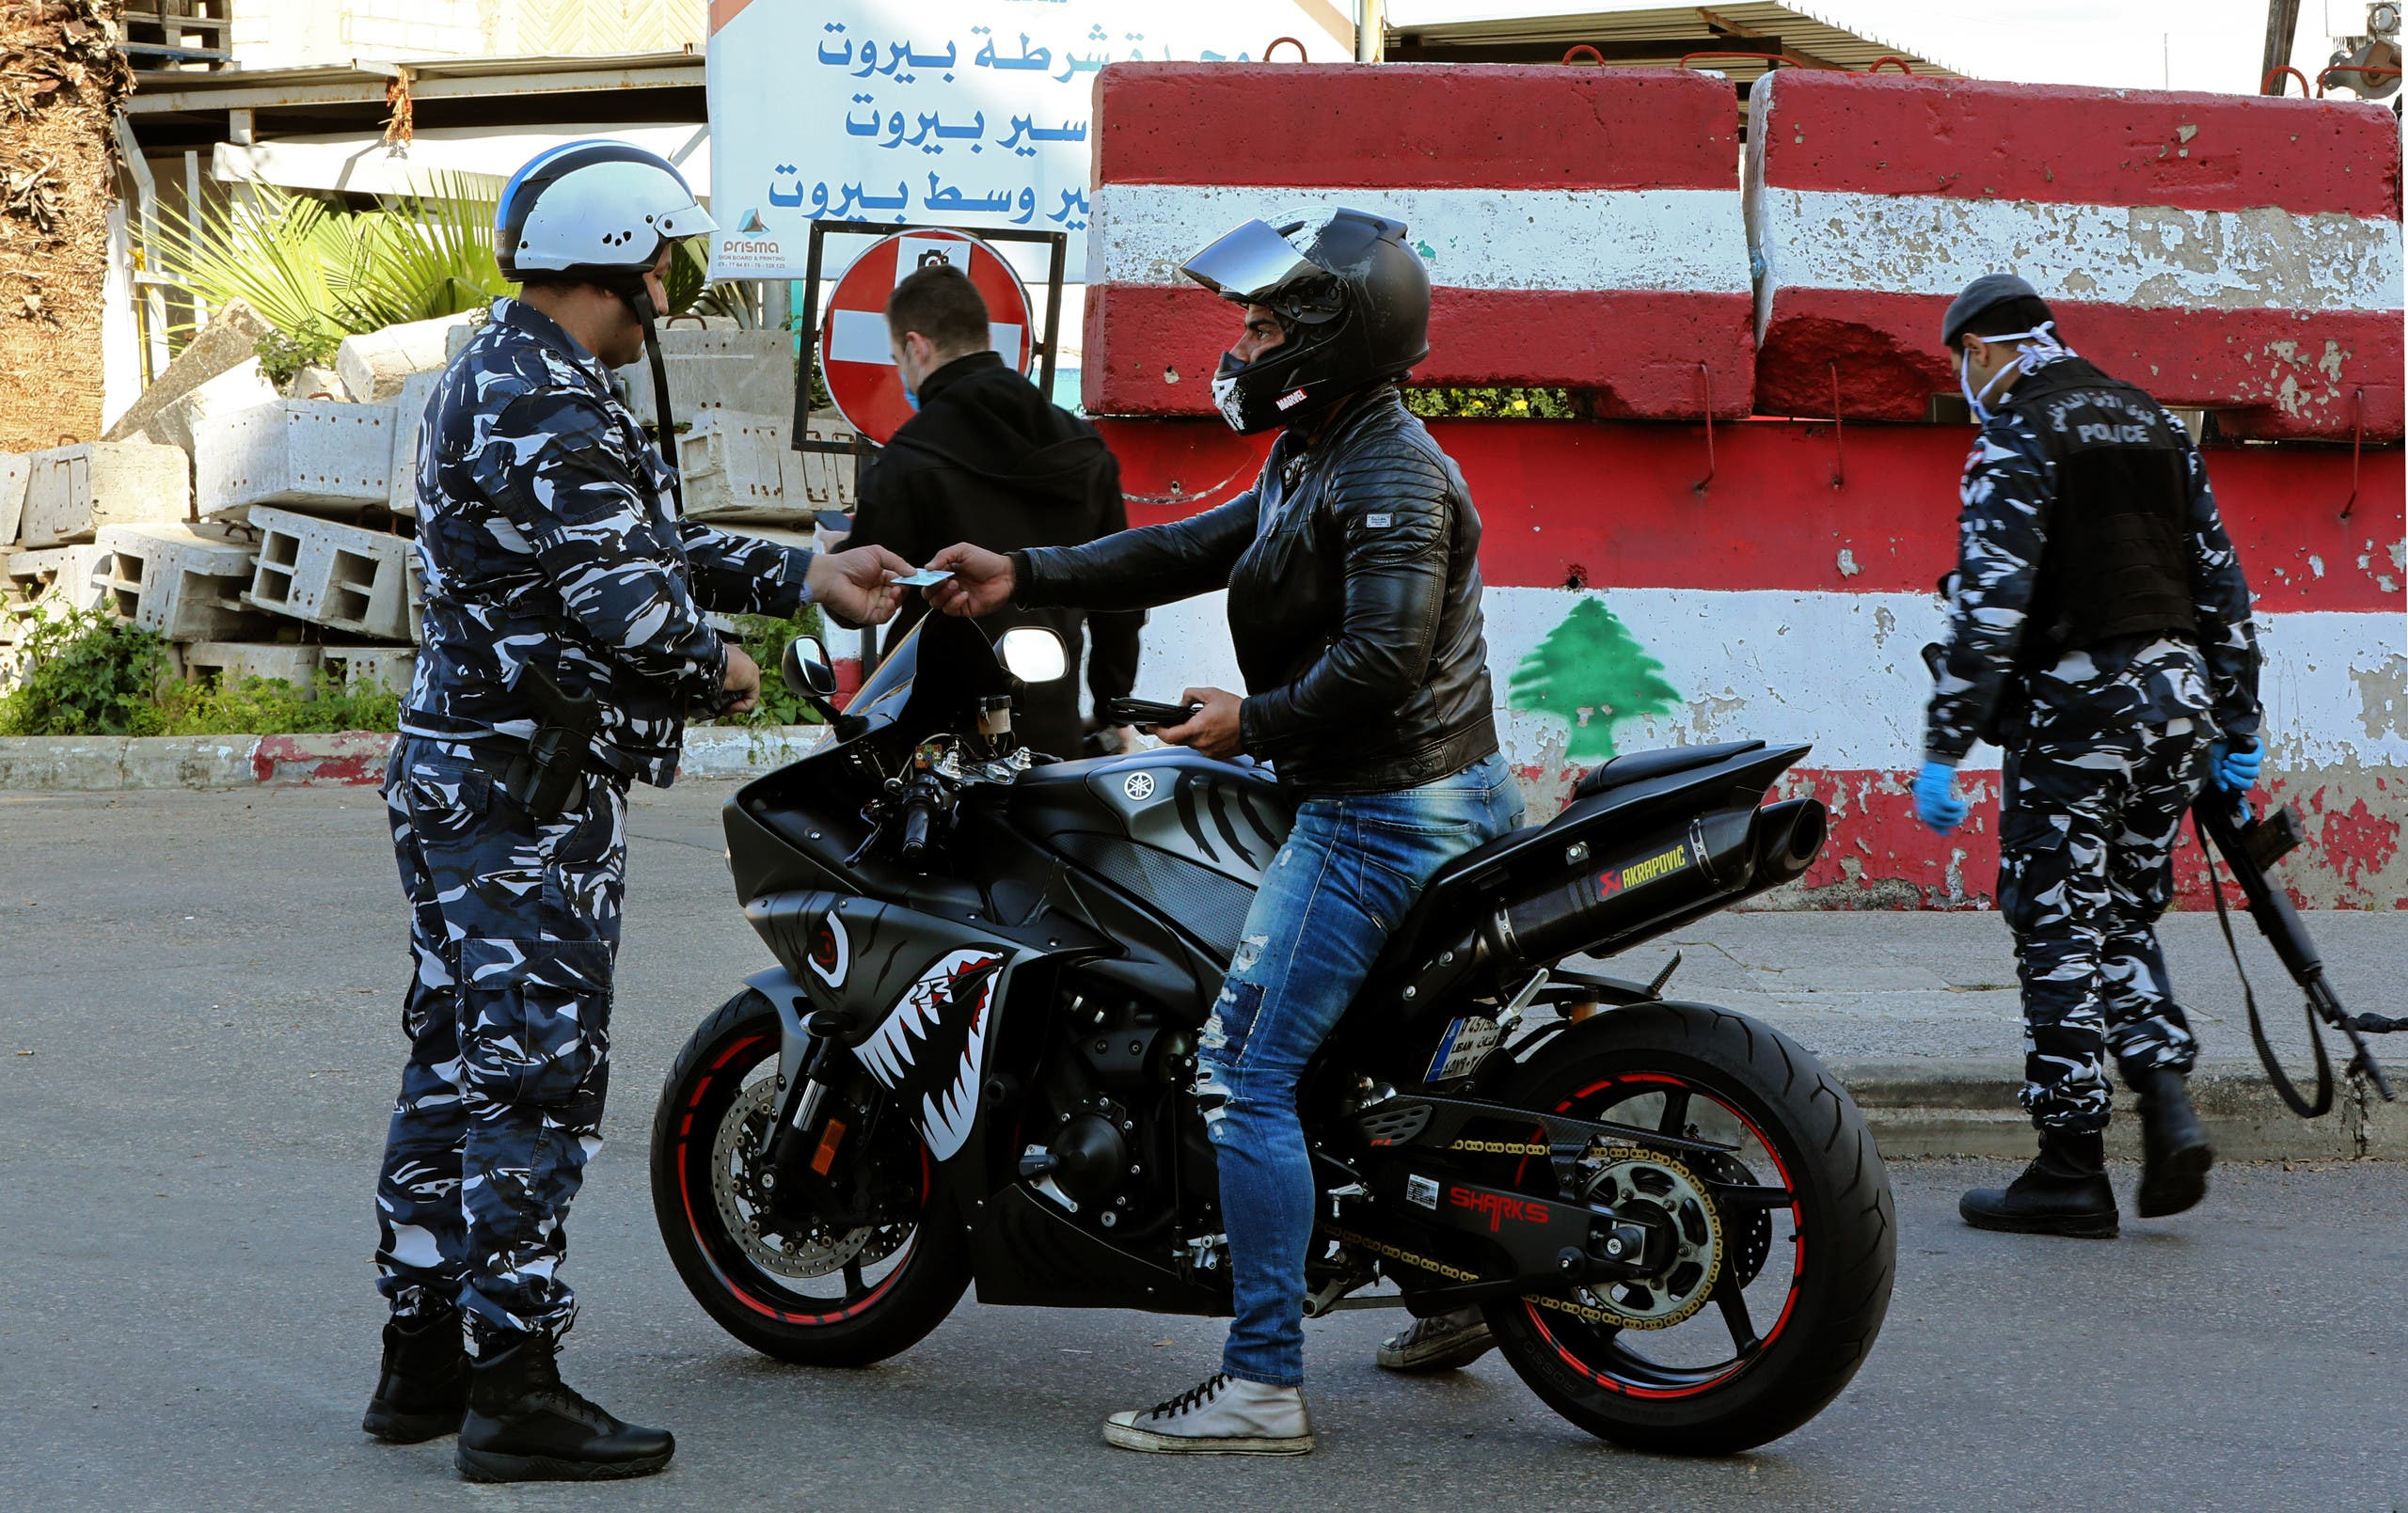 Lebanese security forces stop a man on a bike for violating coronavirus measures in central Beirut, March 22. (Reuters)